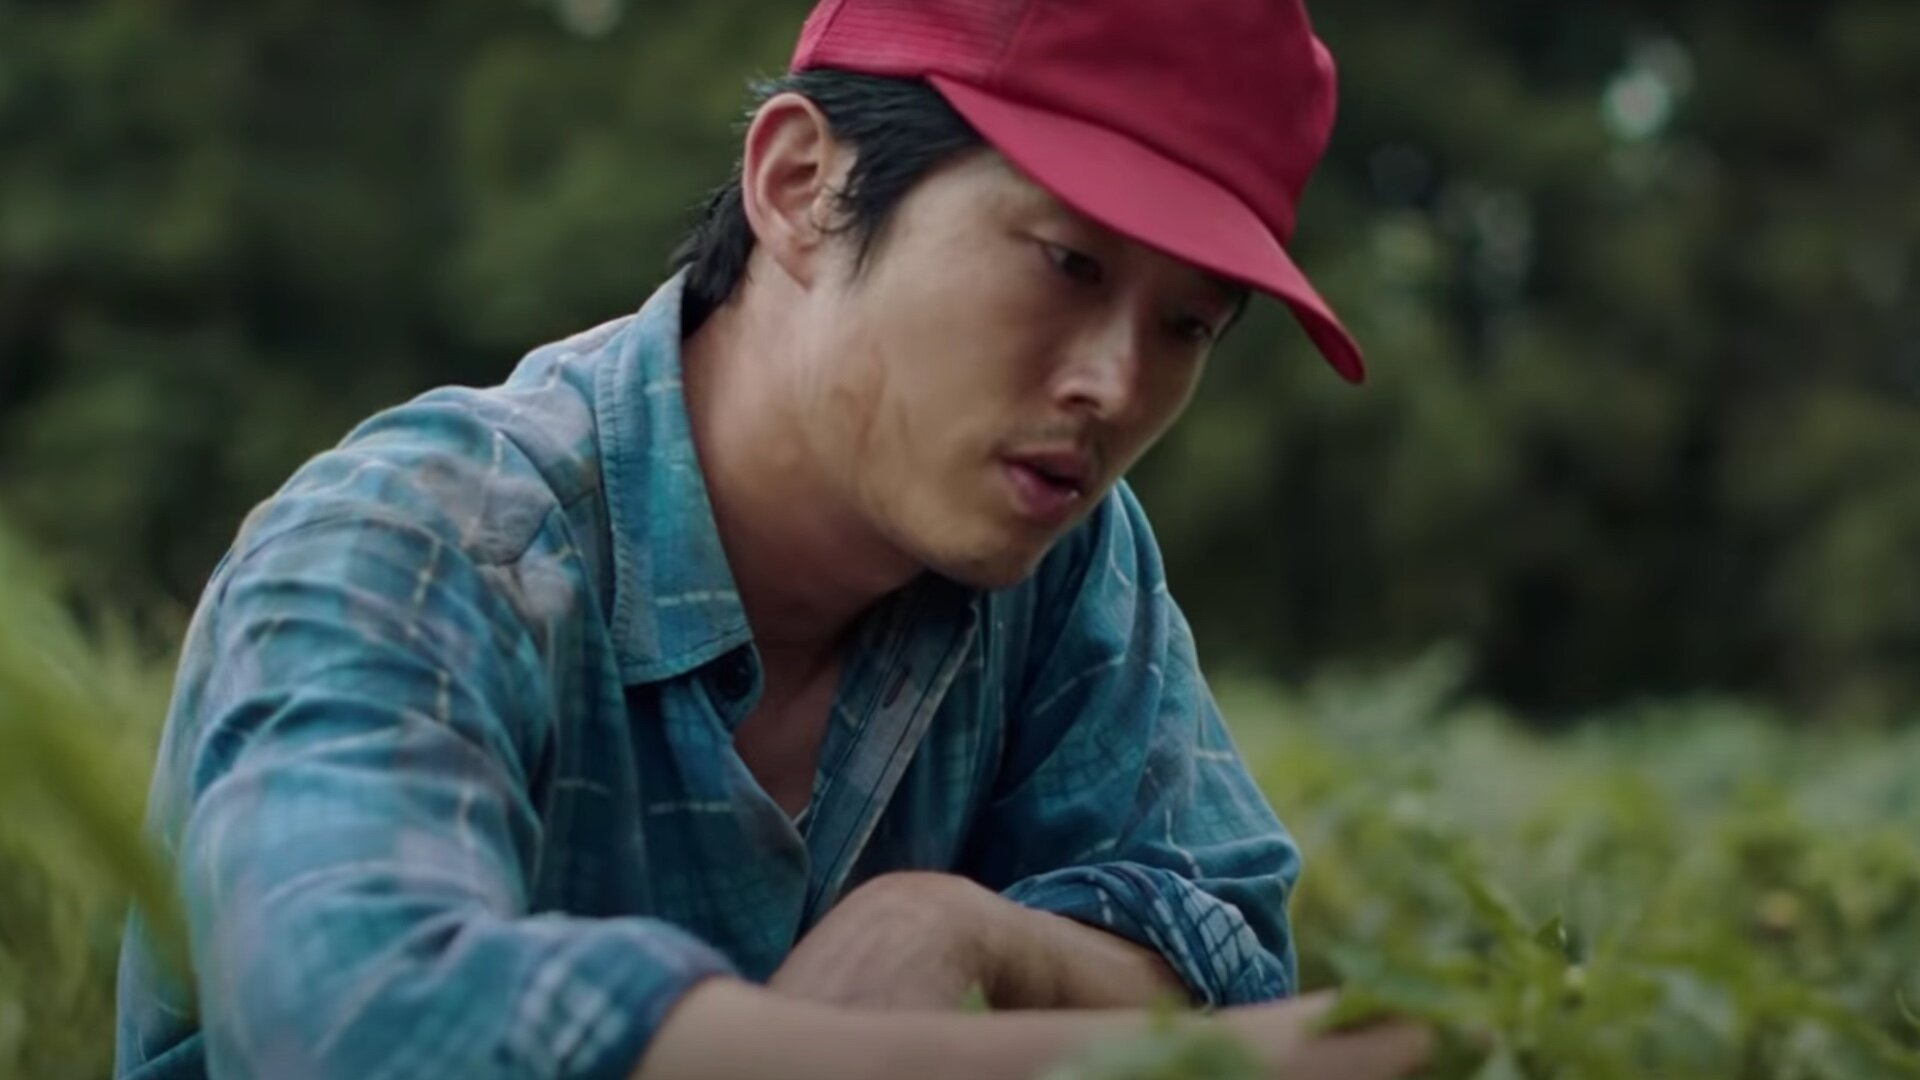 Image is from the film 'Minari' (2020). A man in his thirties looks down at the ground. He is wearing a red baseball cap and a blue plaid shirt.